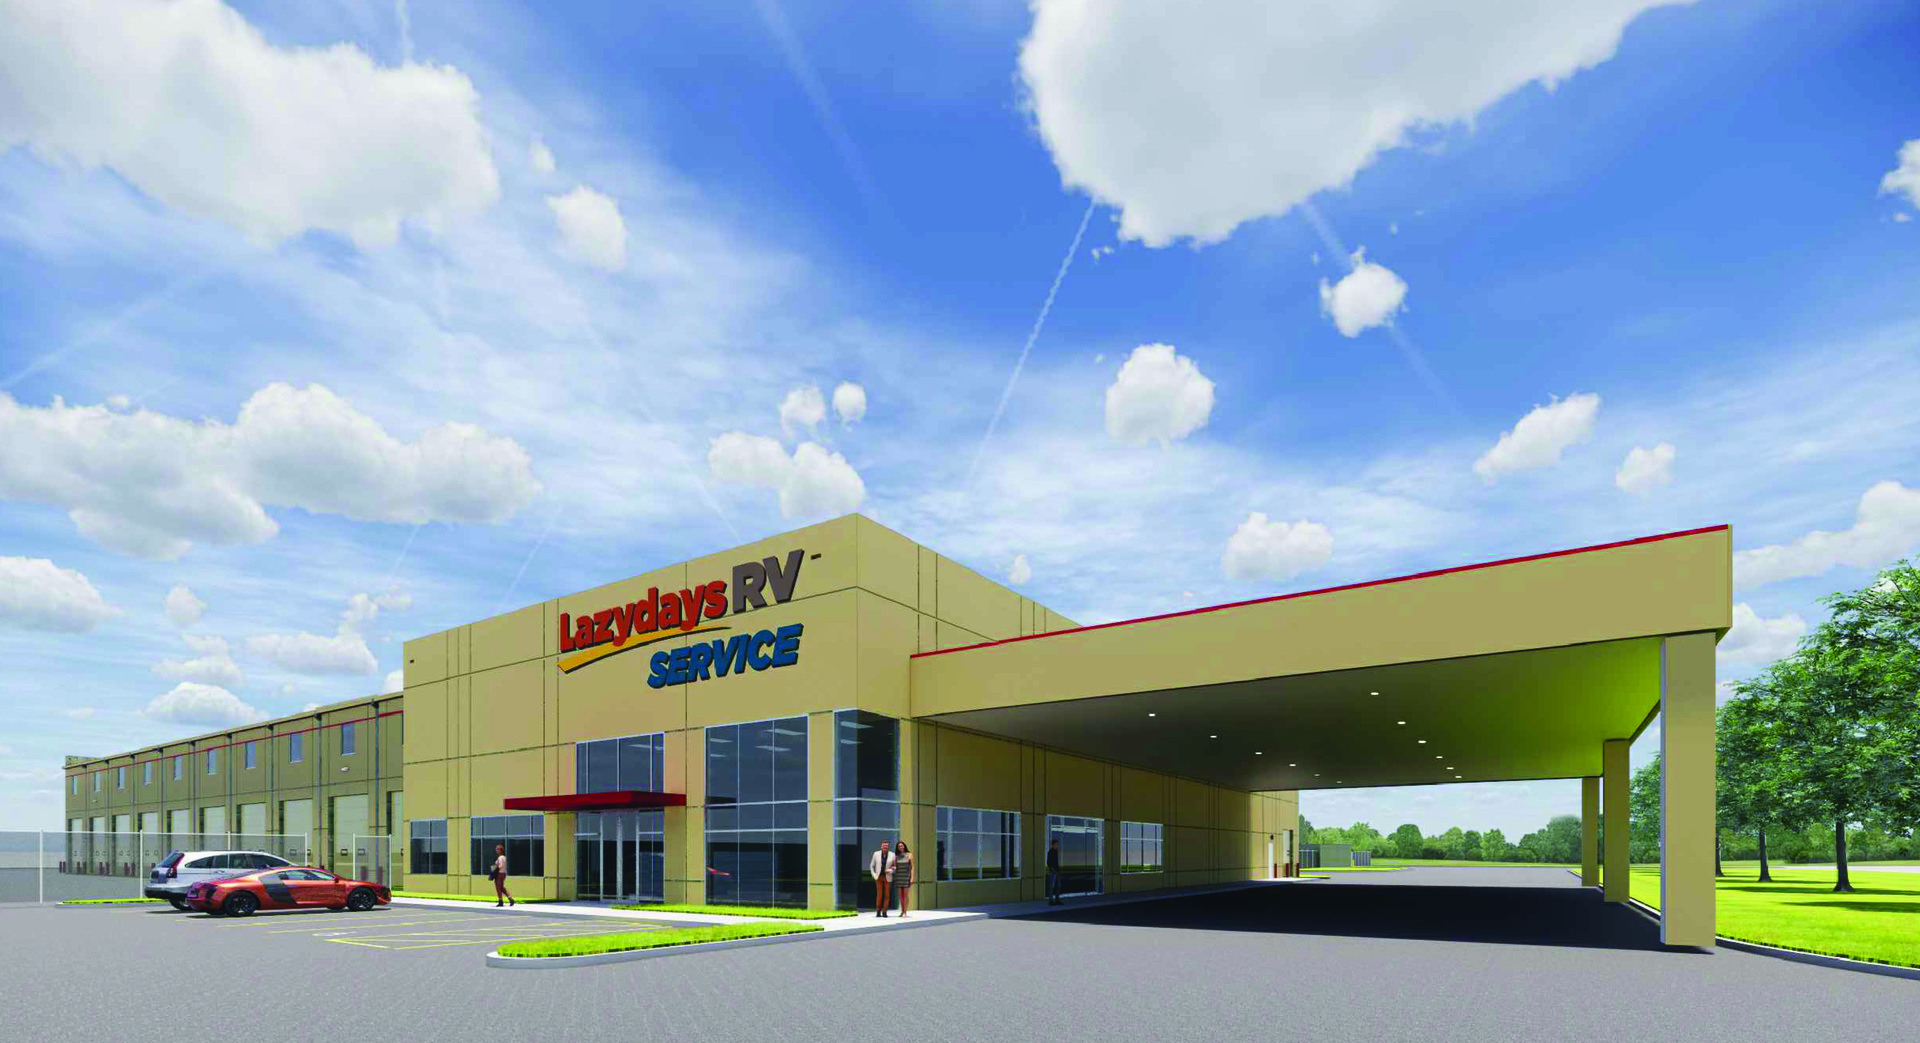 Exclusive Lazydays RV Opens Standalone Service Center in Houston ...